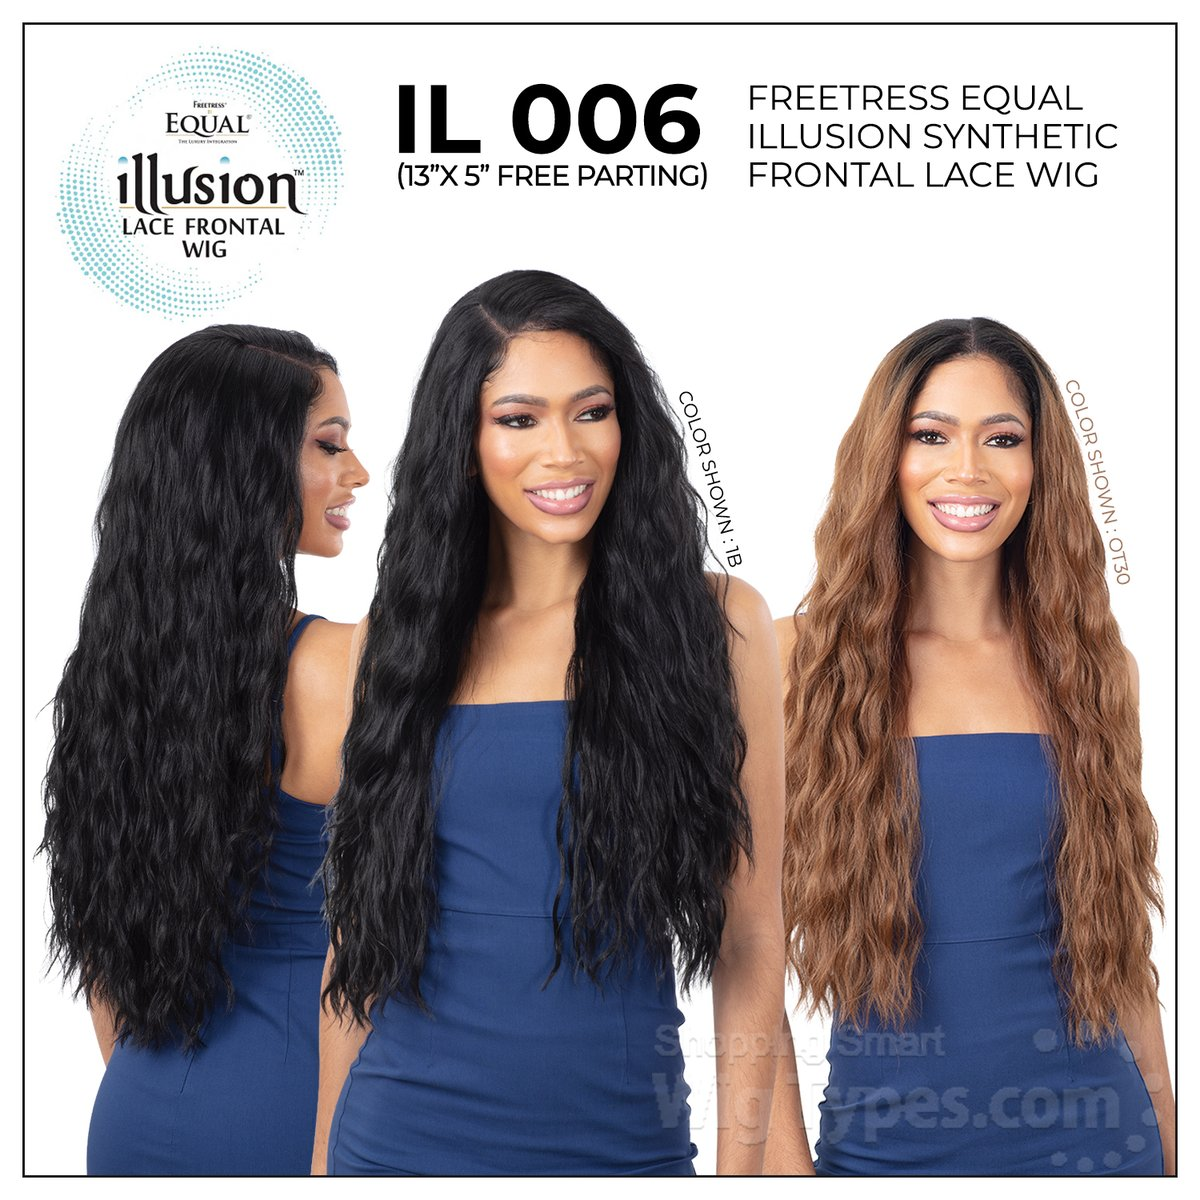 Freetress Equal Illusion Synthetic Frontal Lace Wig - IL 006 (13x5 free parting) (https://soo.nr/u7W7 )  . . . . #wigtypes #wigtypesdotcom #trendyhair #protectivestyles #blackgirlhair #blackgirlmagic #instahair #Longwigs #lacefrontalwig #illusionwig #freepartingwig #il006wigpic.twitter.com/GxqtqyLfsZ